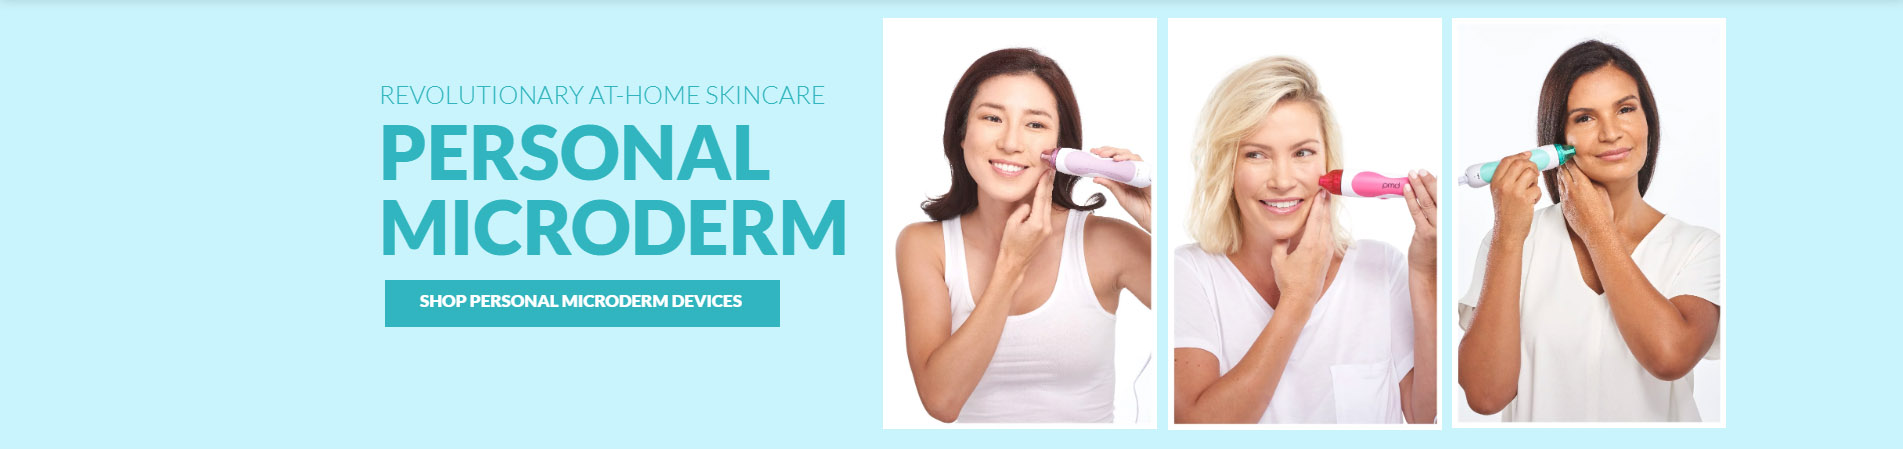 Personal Microderm